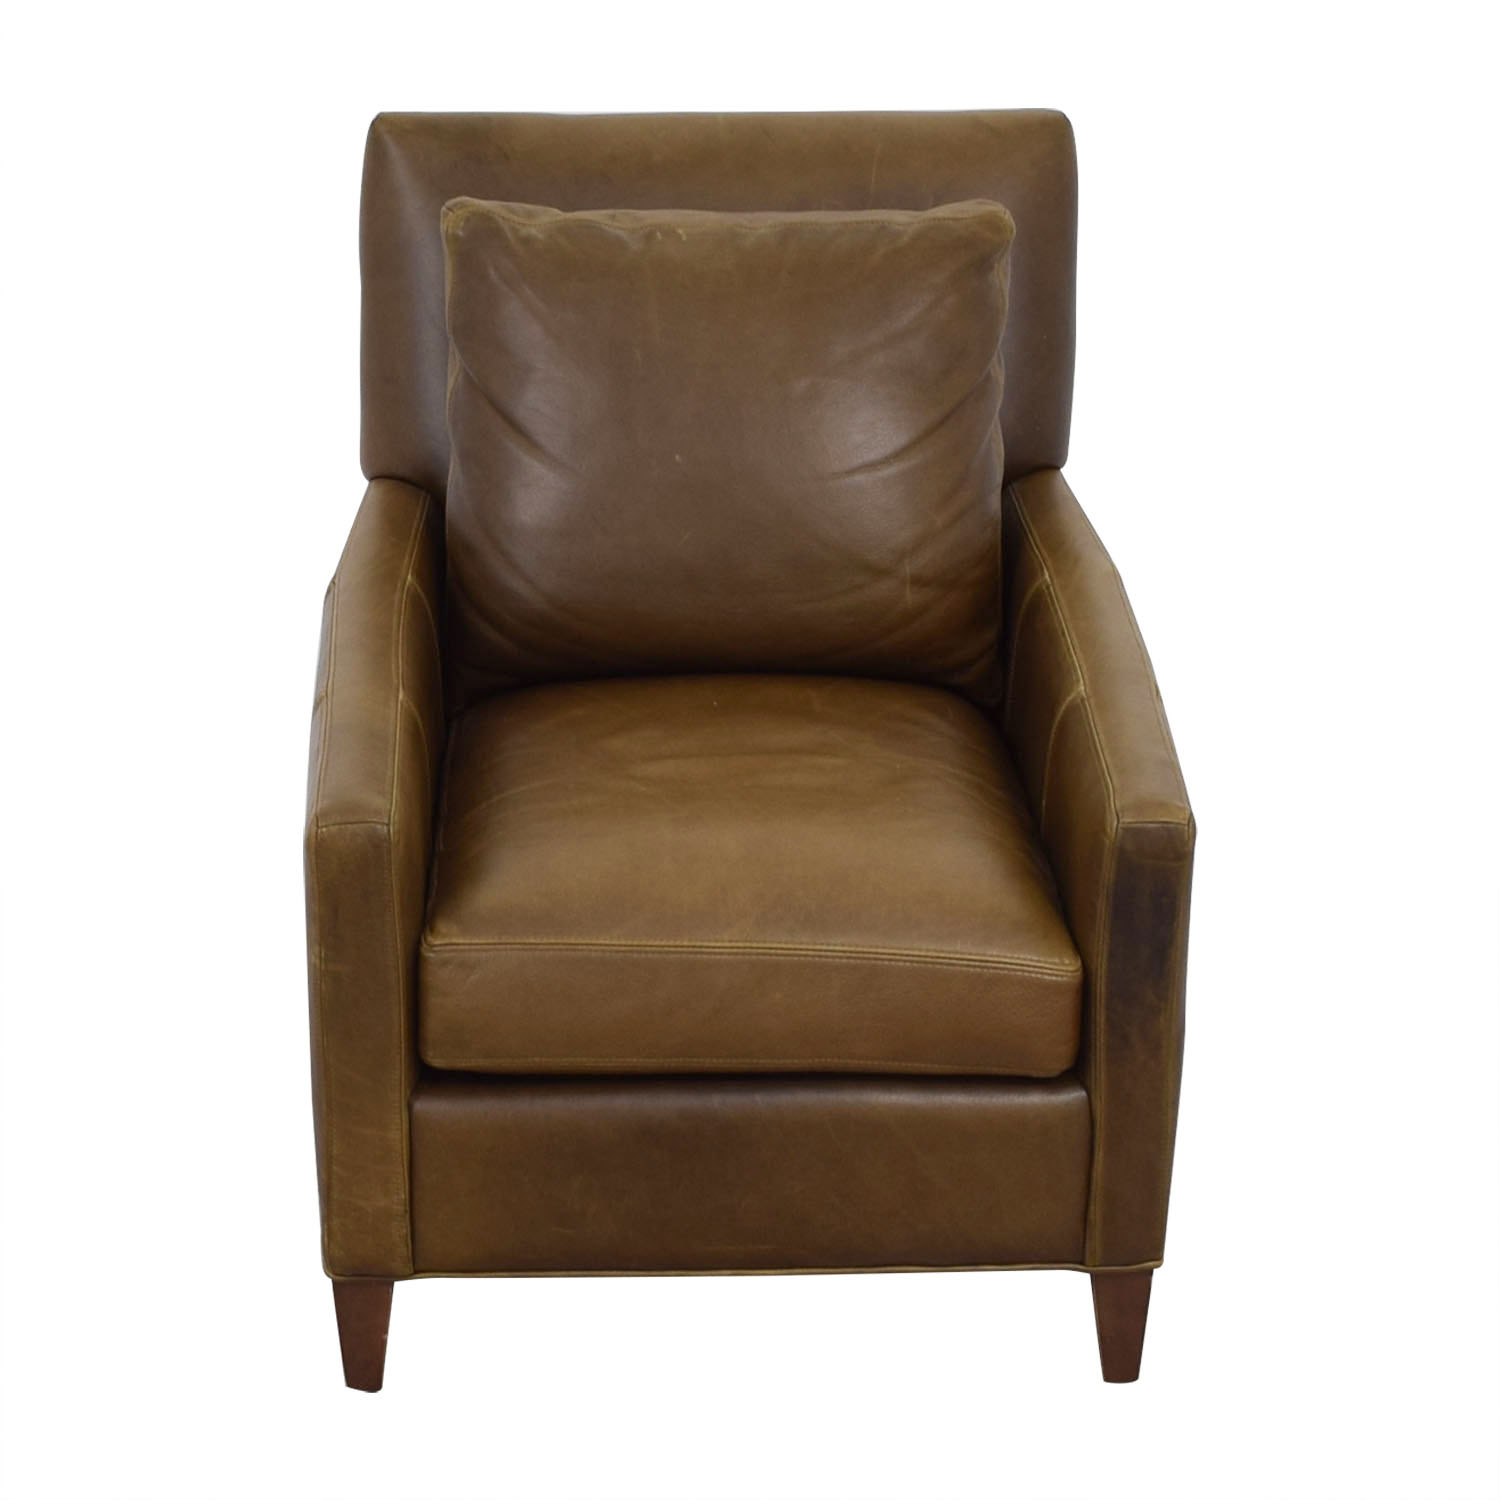 ABC Carpet and Home ABC Carpet & Home Cobble Hill Brown Leather Club Chair